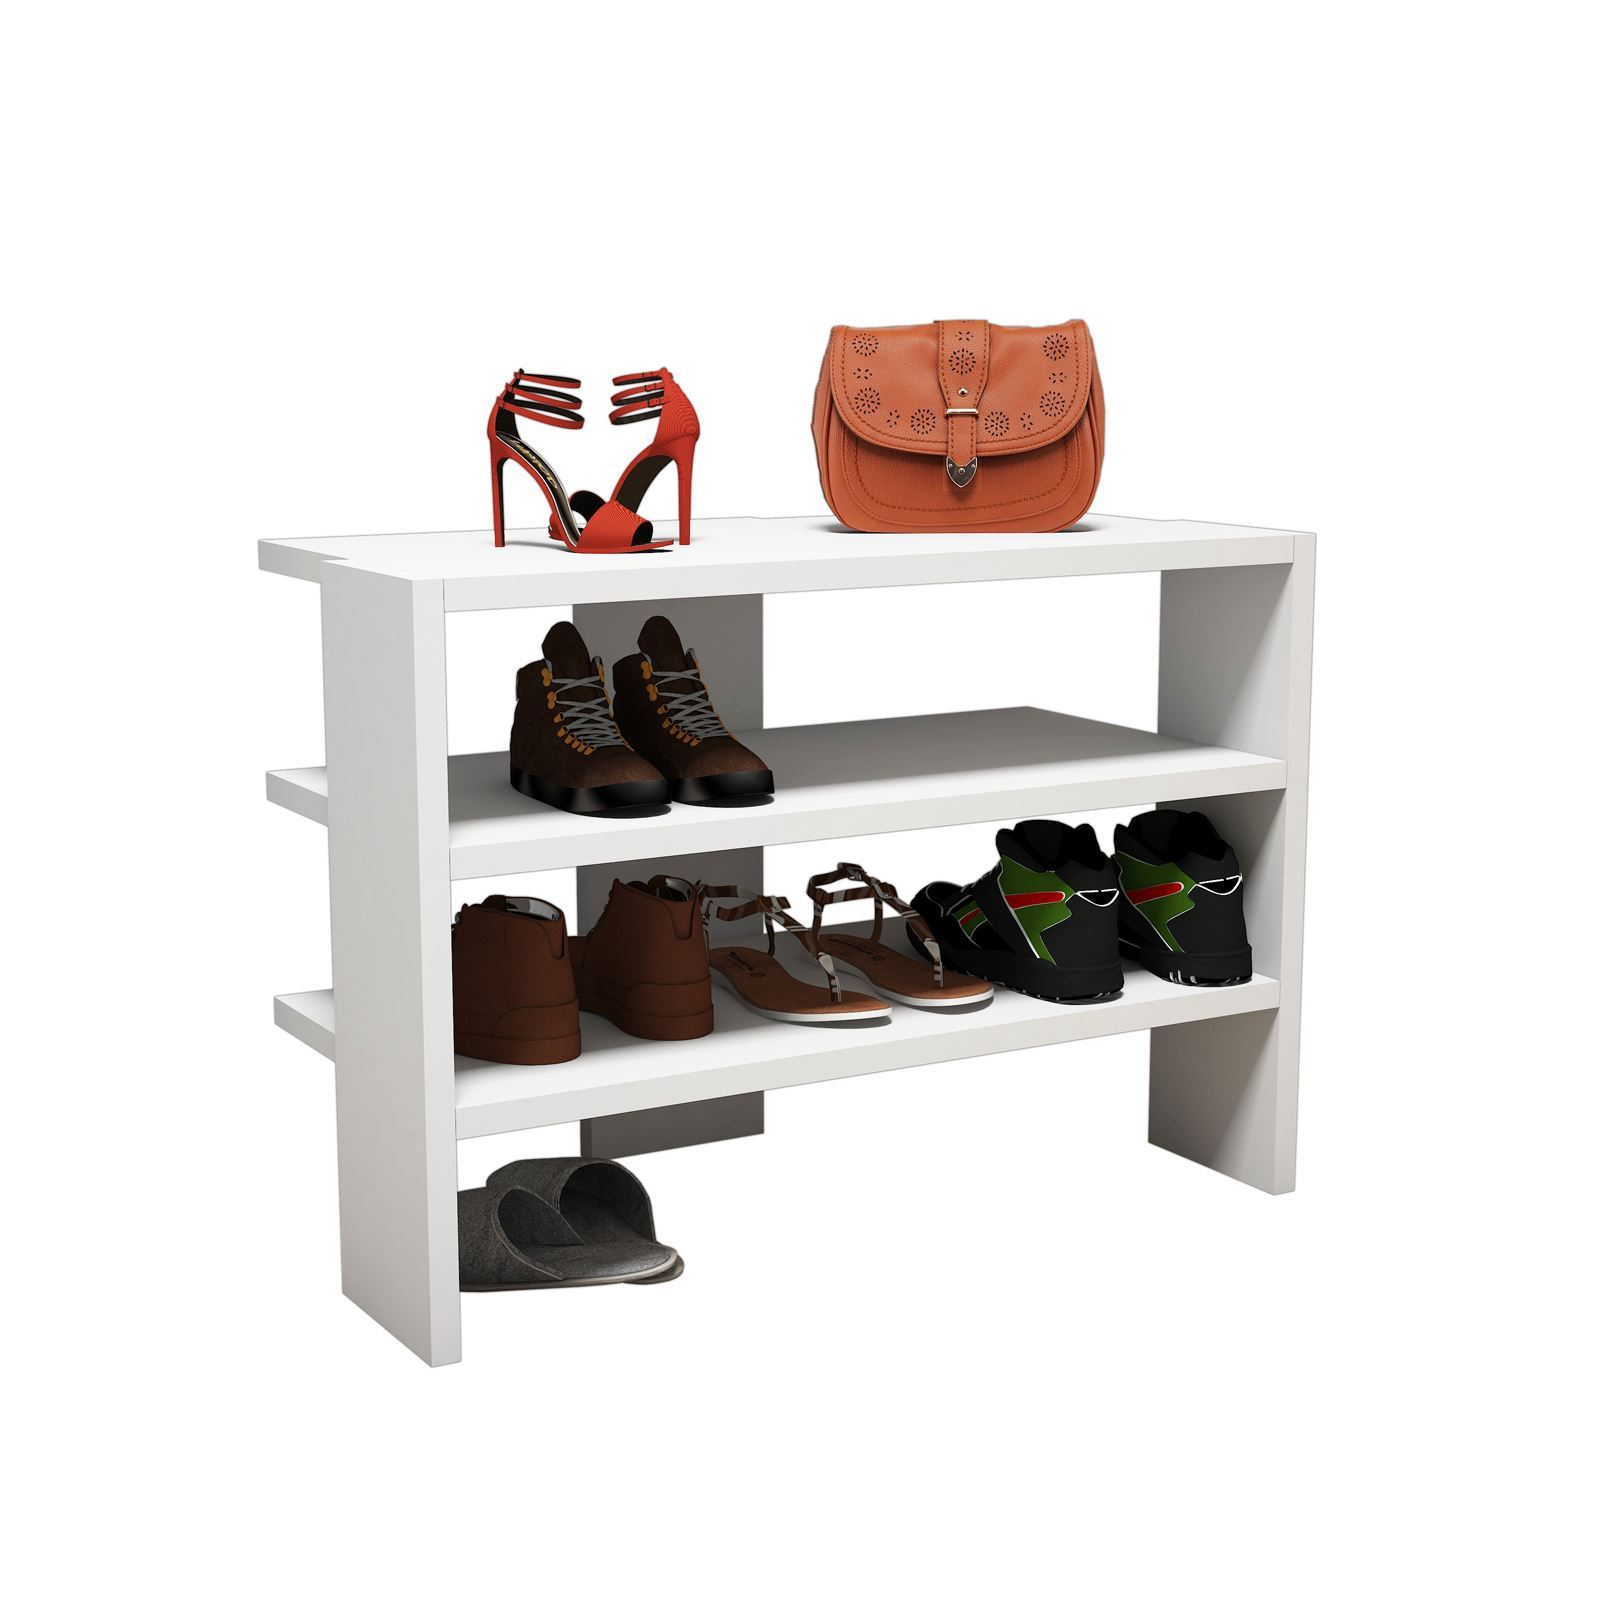 Design furniture mueble para zapatos blanco brandalley for Mueble de zapatos